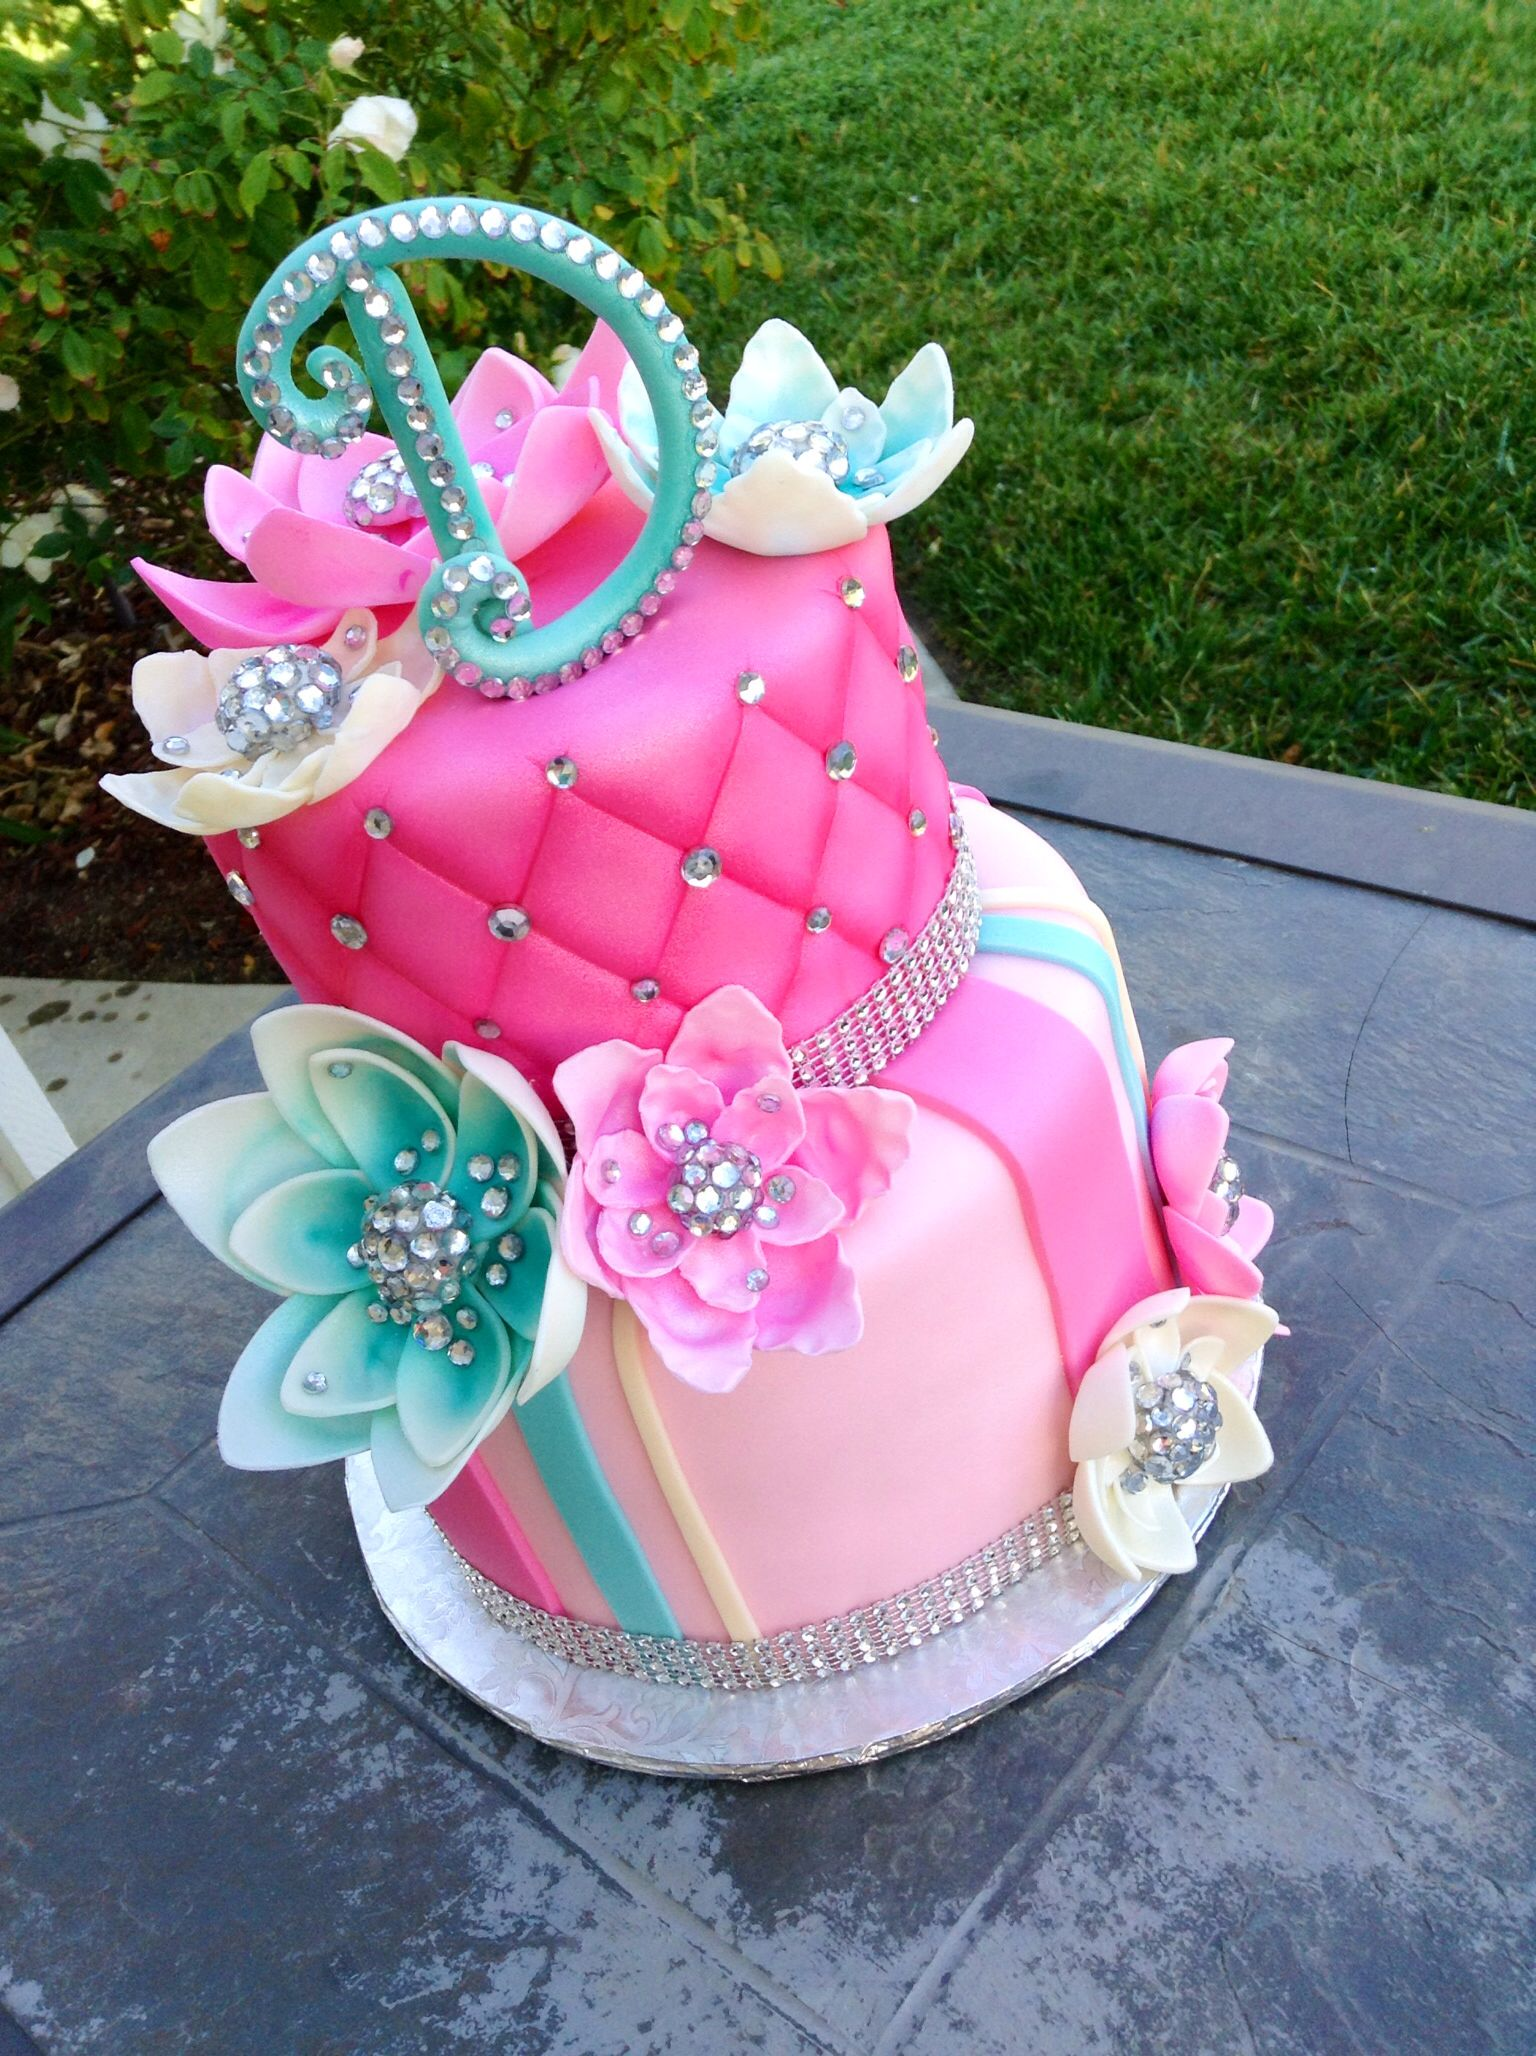 Delicious Homemade Beautiful Birthday Cake With Bling Friends cake